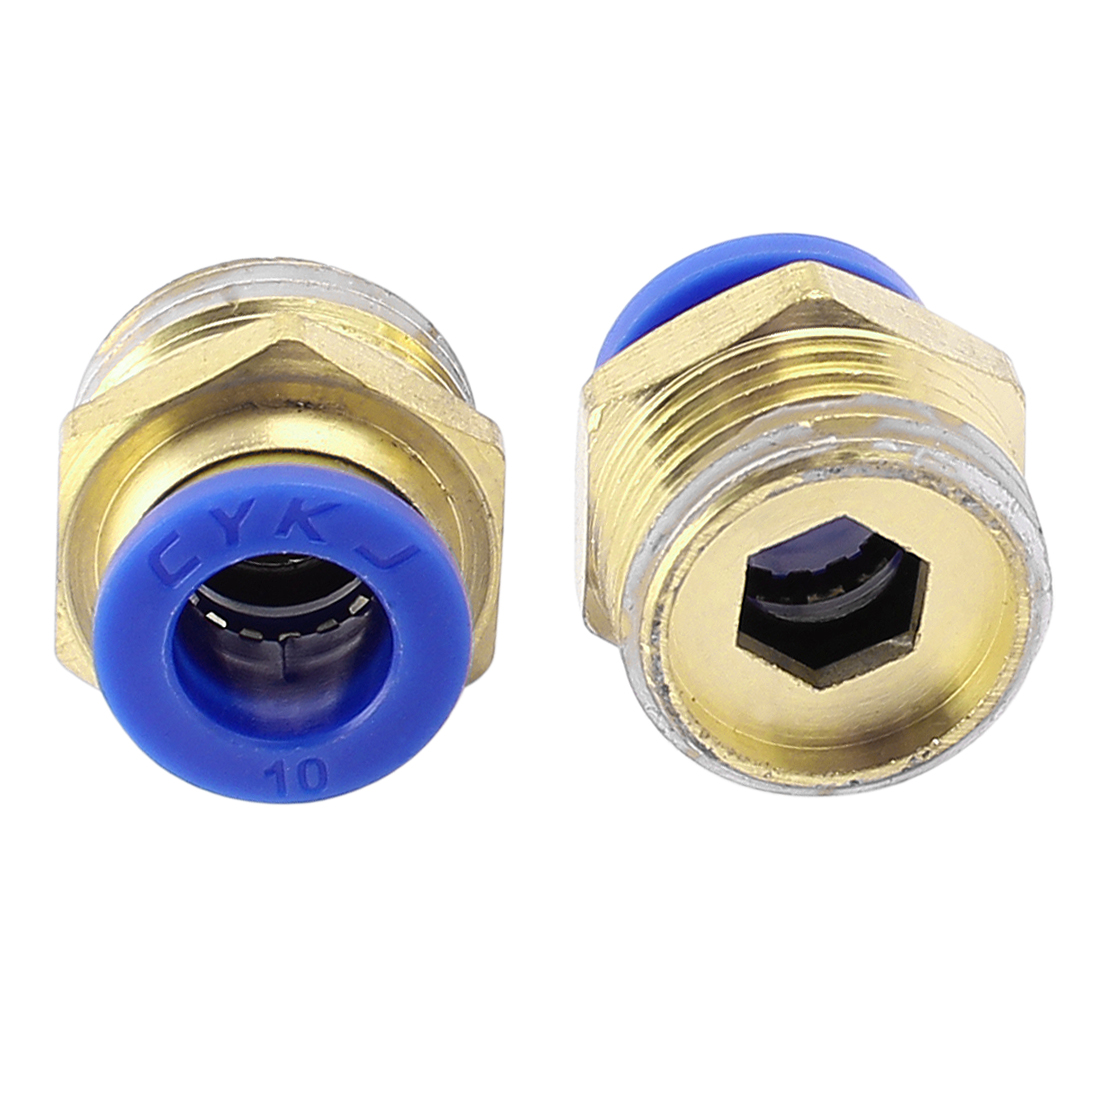 2 Pcs 10mm Tube to 1/2 BSP Thread Push in Quick Connect Coupler Fittings PC10-04